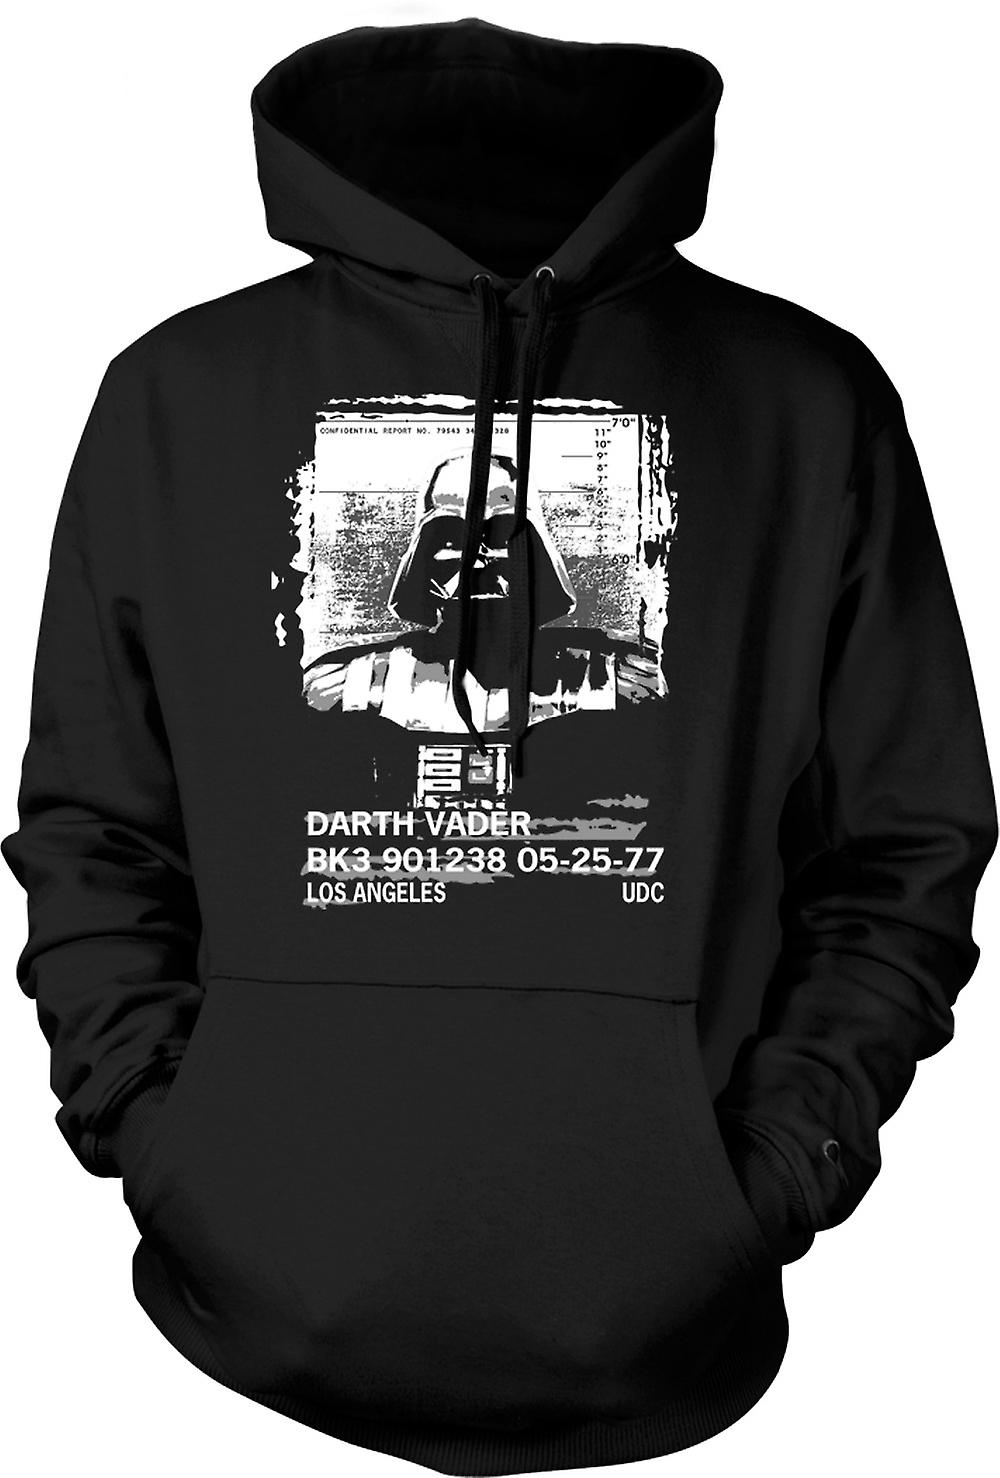 Kids Hoodie - Darth Vader Mug Shot - Star Wars